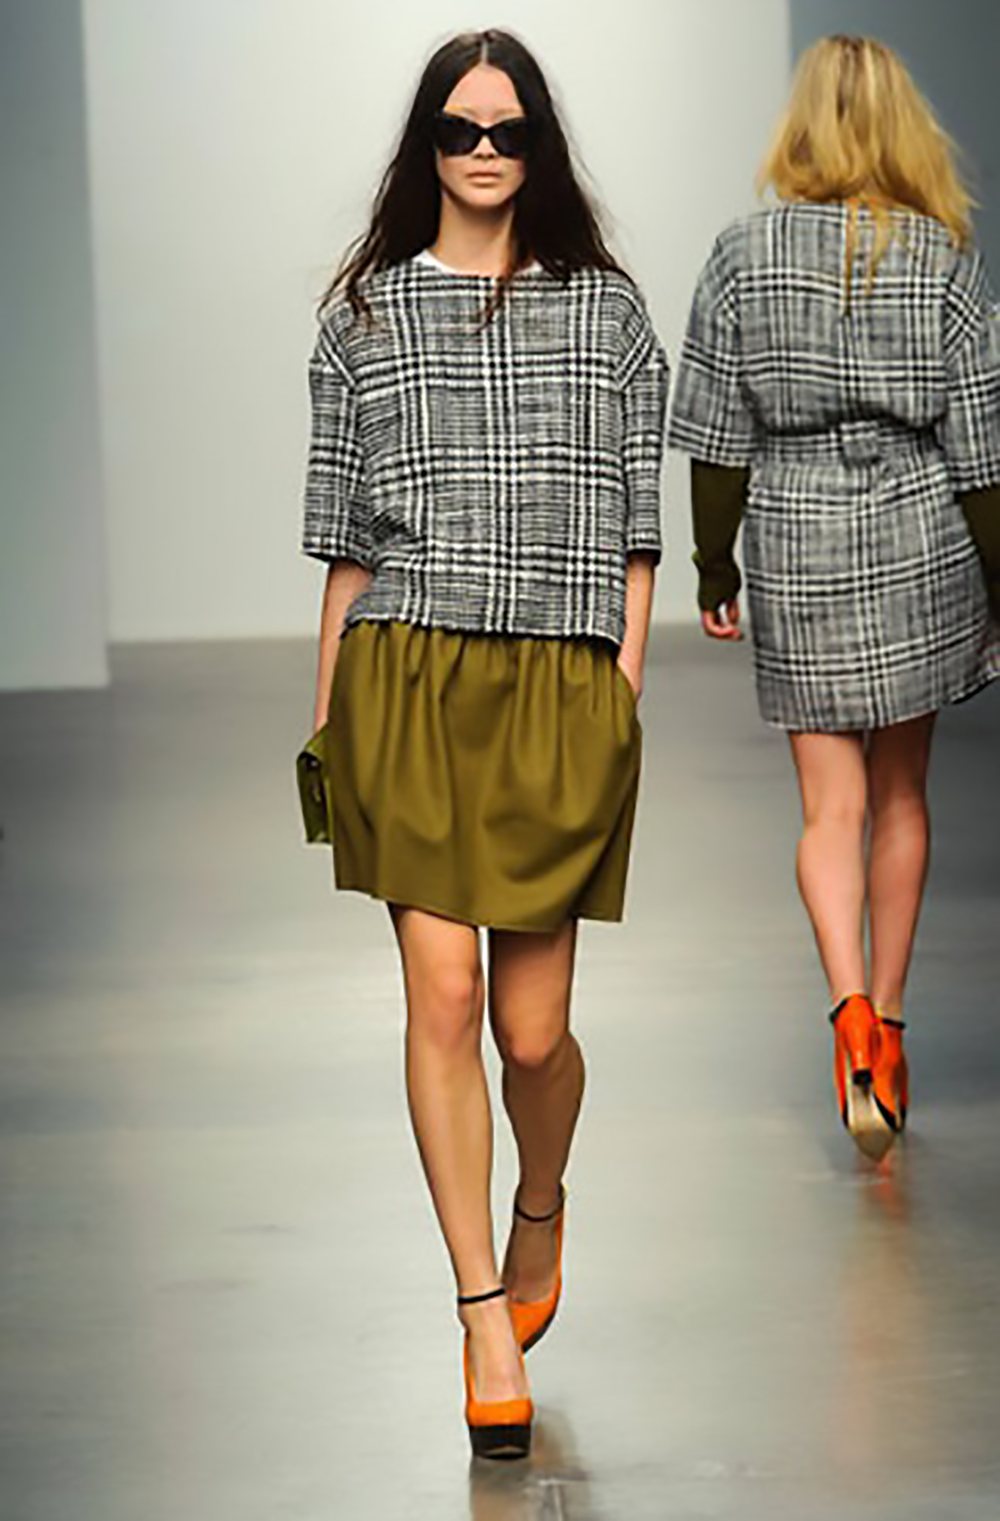 elle.com plaid 2013 runway karen walker mad for plaid 1500.jpg